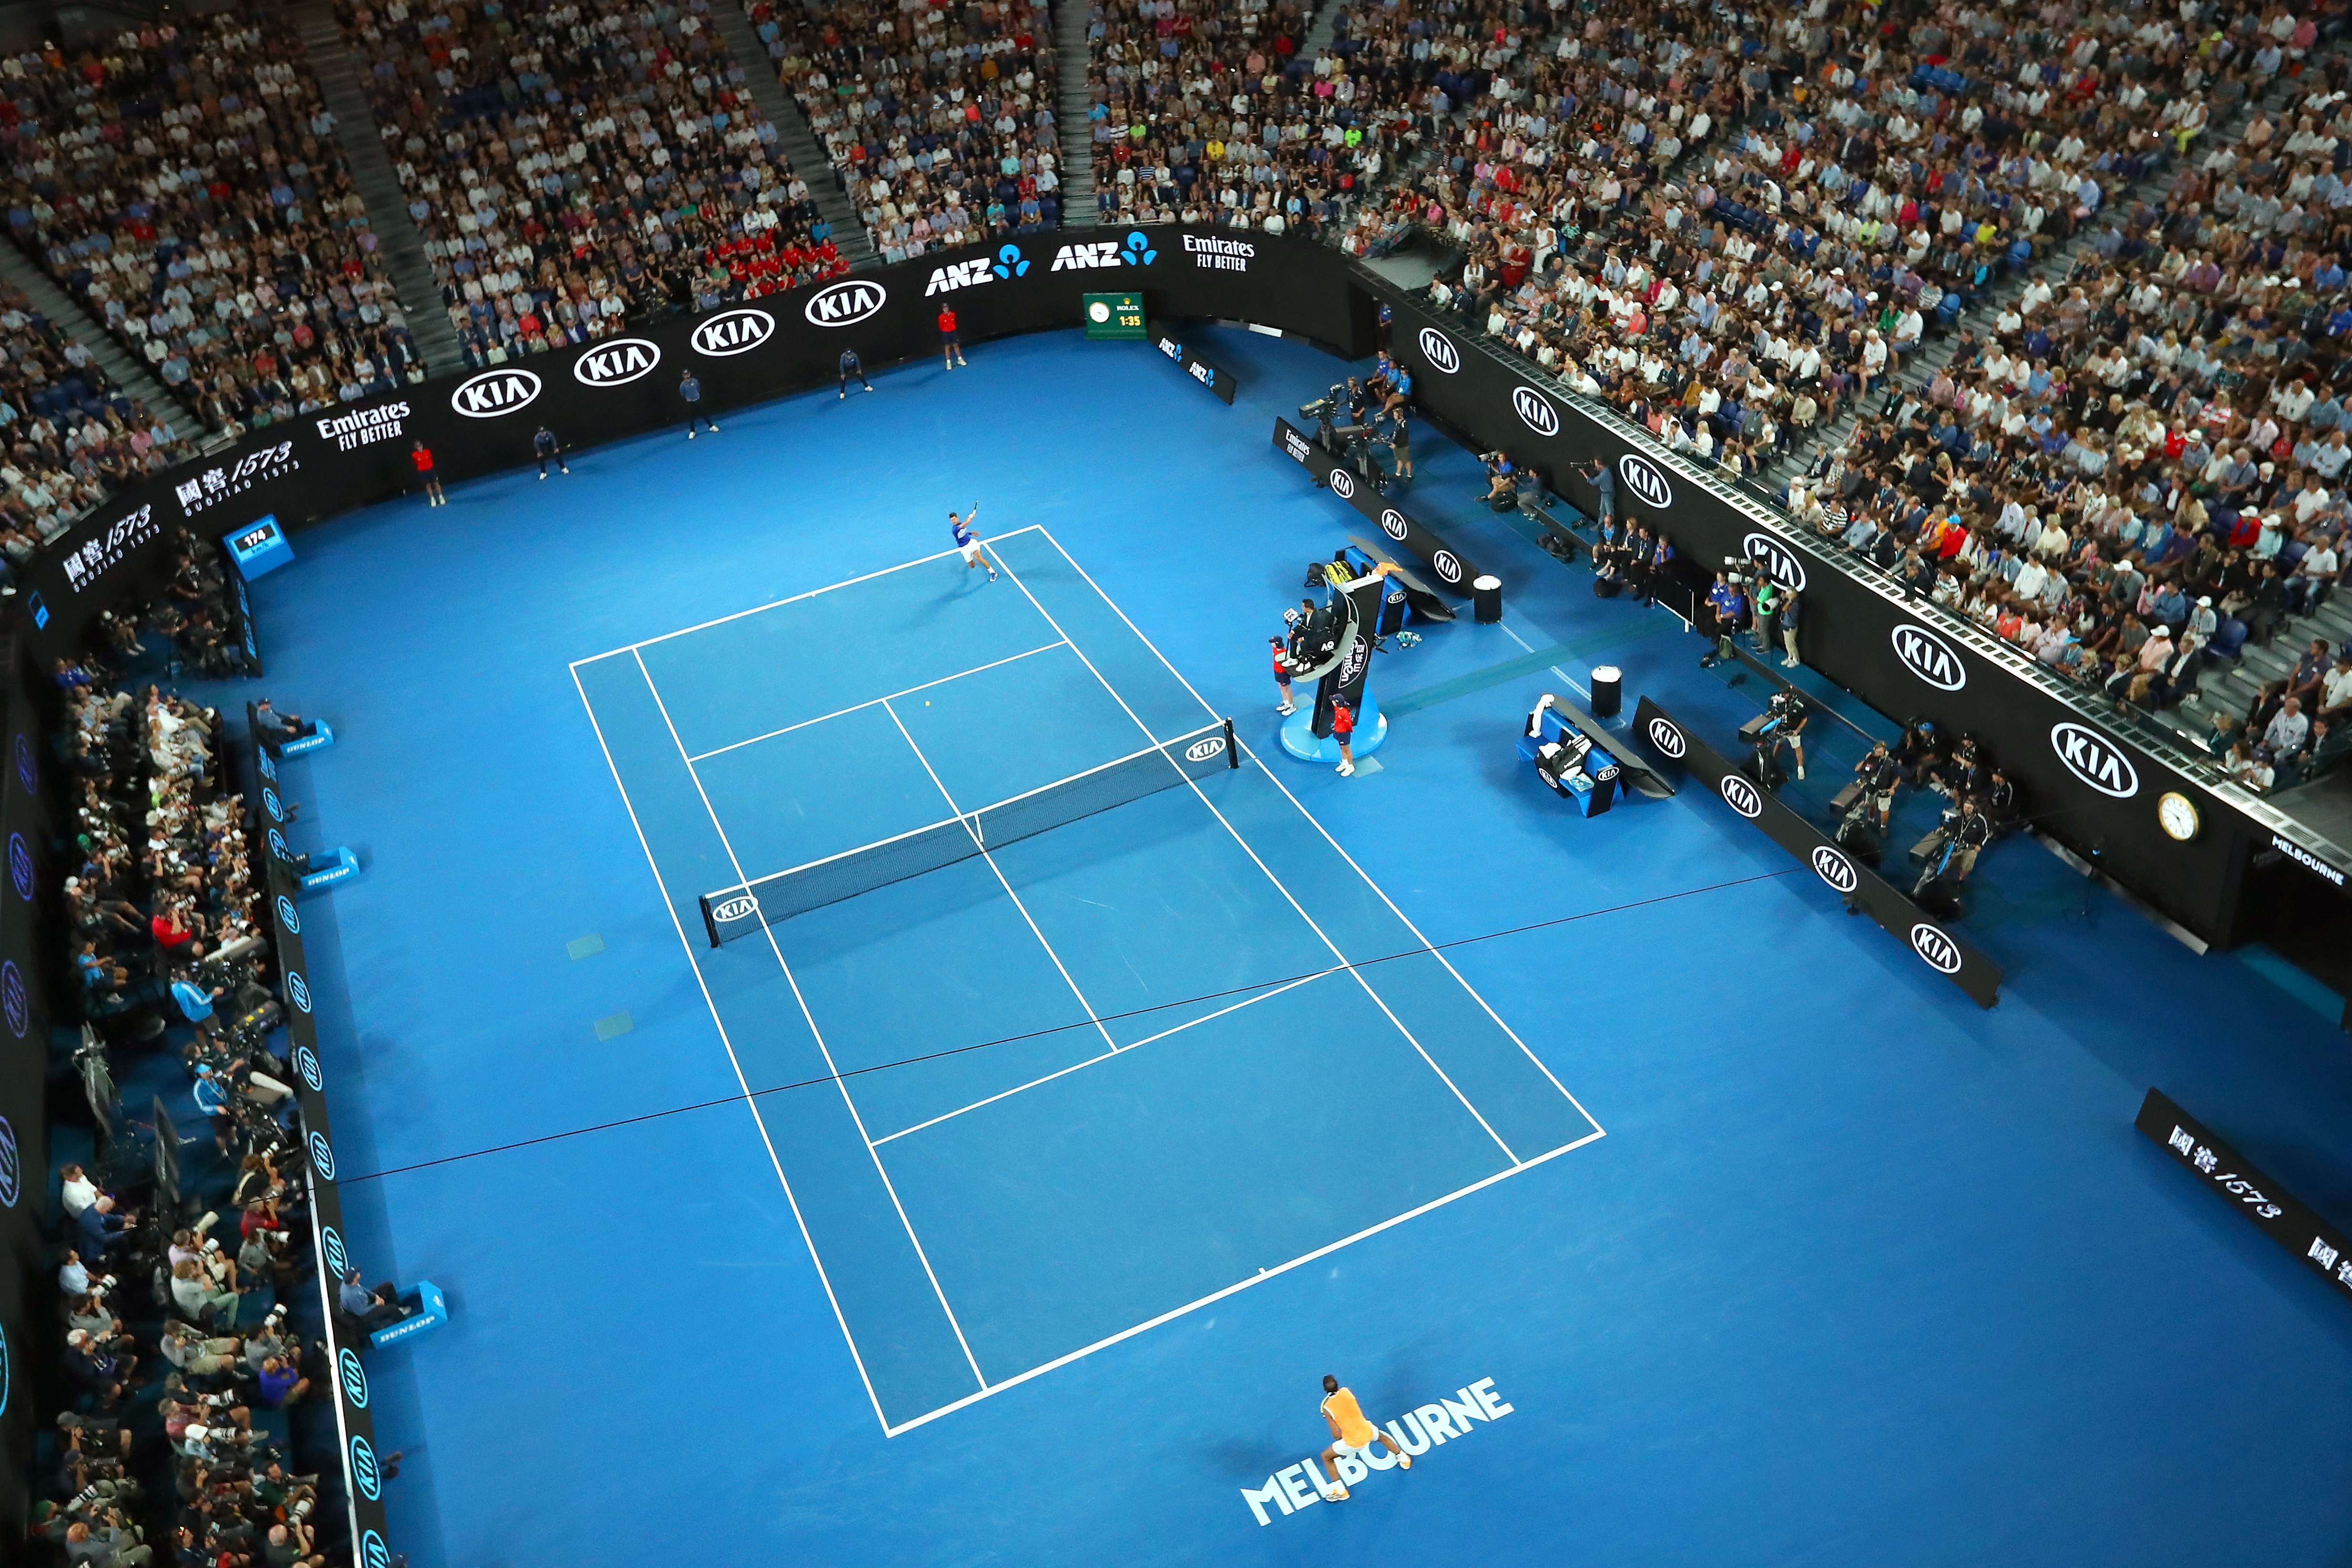 Upcoming Australian Open Will Have A Different Fan Vibe Tennis Tourtalk